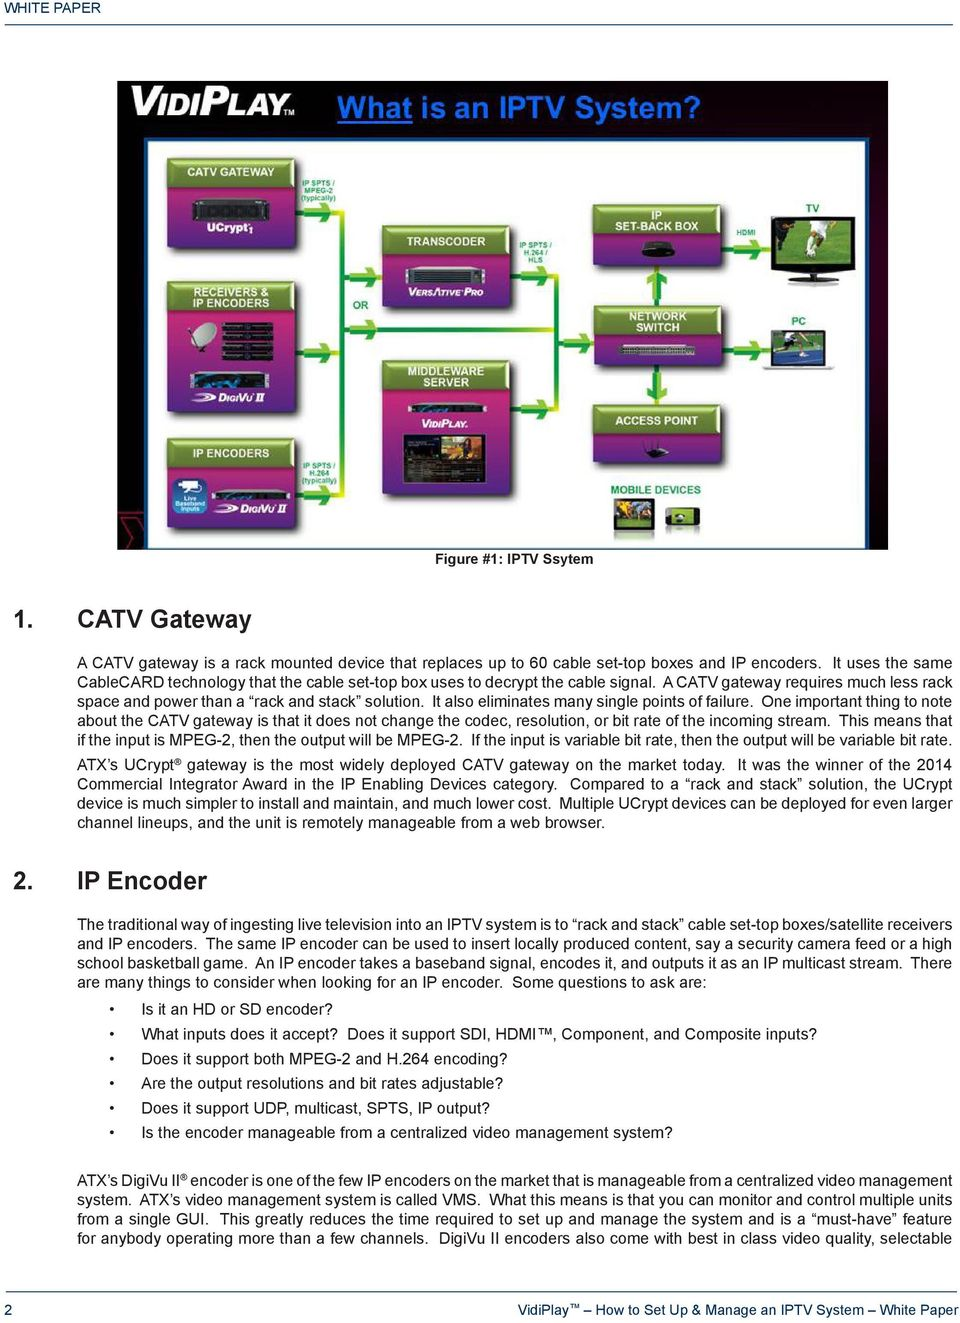 It also eliminates many single points of failure. One important thing to note about the CATV gateway is that it does not change the codec, resolution, or bit rate of the incoming stream.